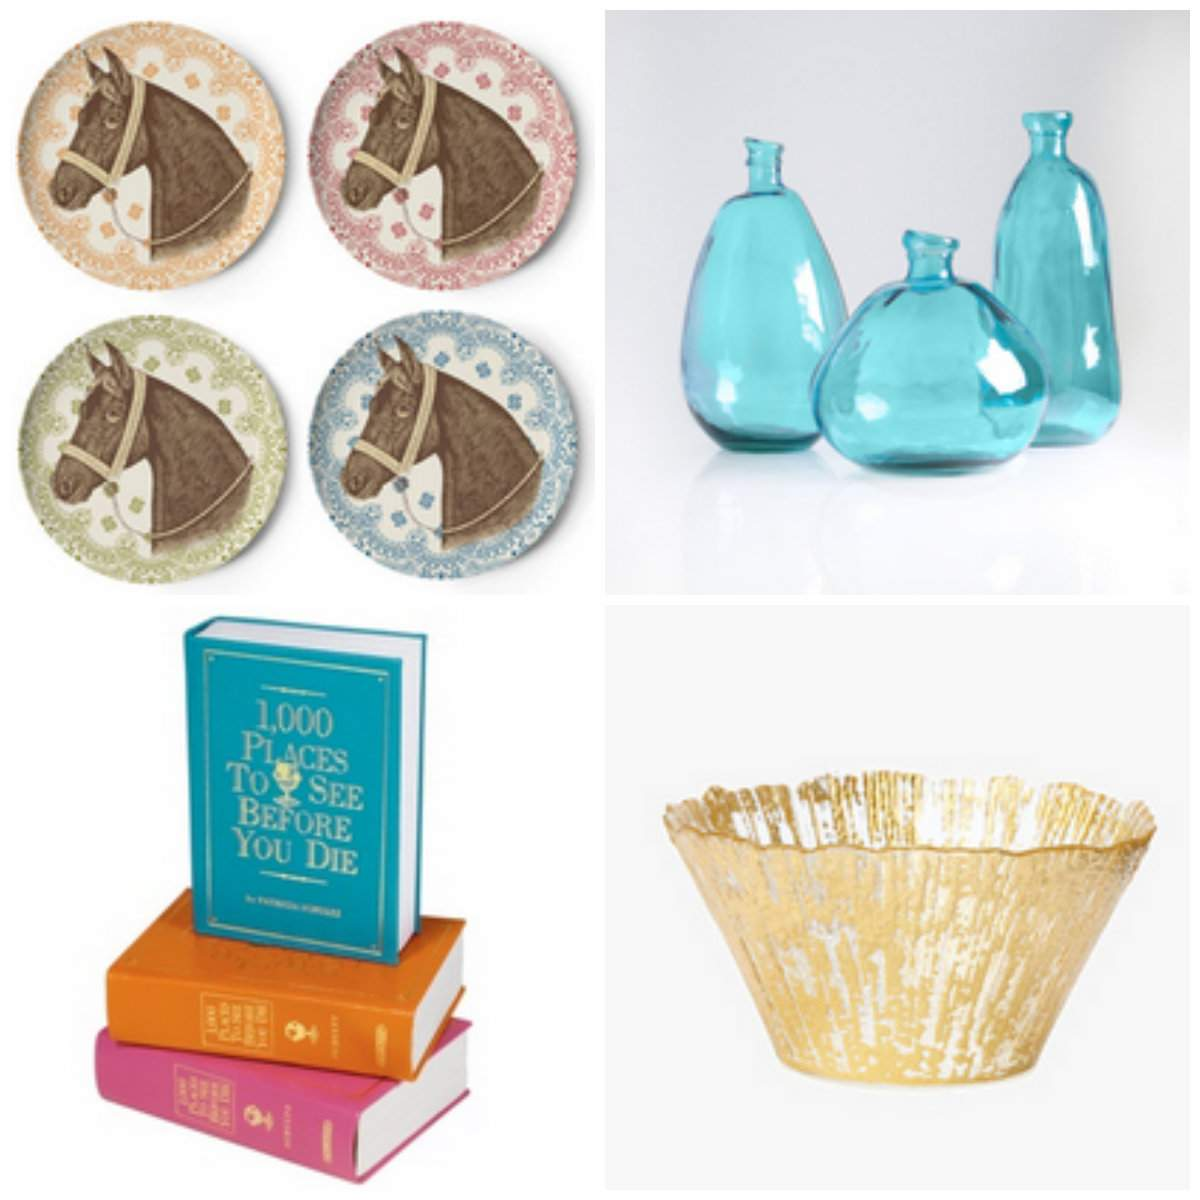 Meet Our Favorite Wedding Registry